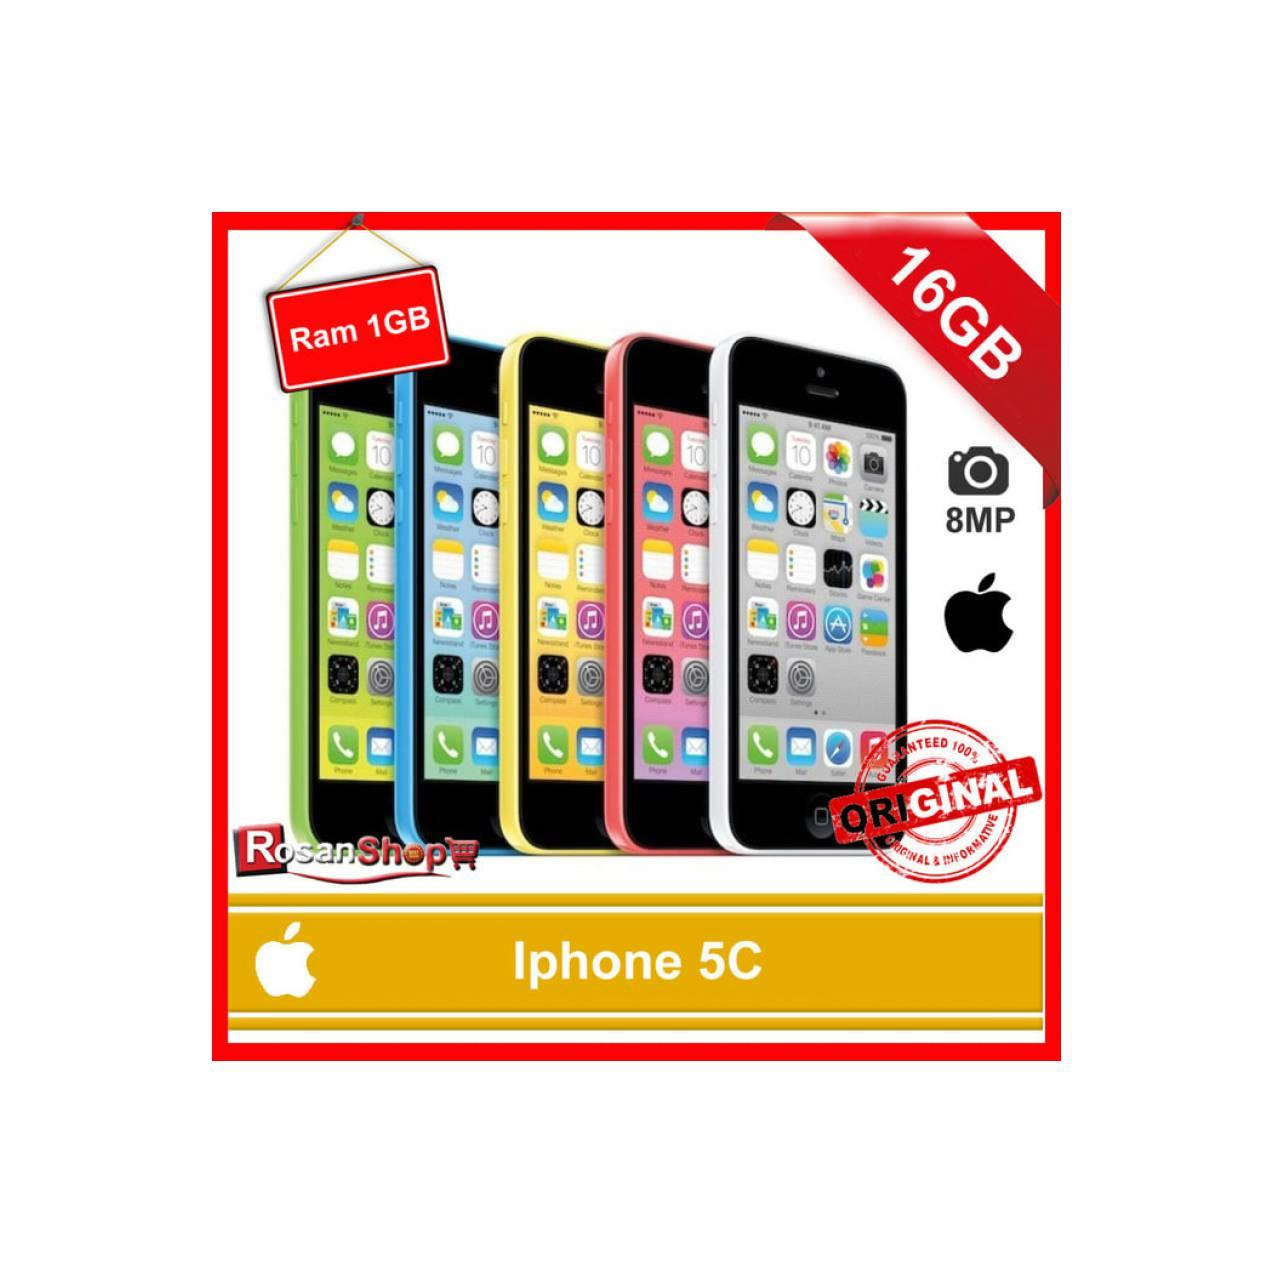 IPHONE 5C 16Gb Ram 1Gb 8MP Garansi 1thn Original Apple - Putih